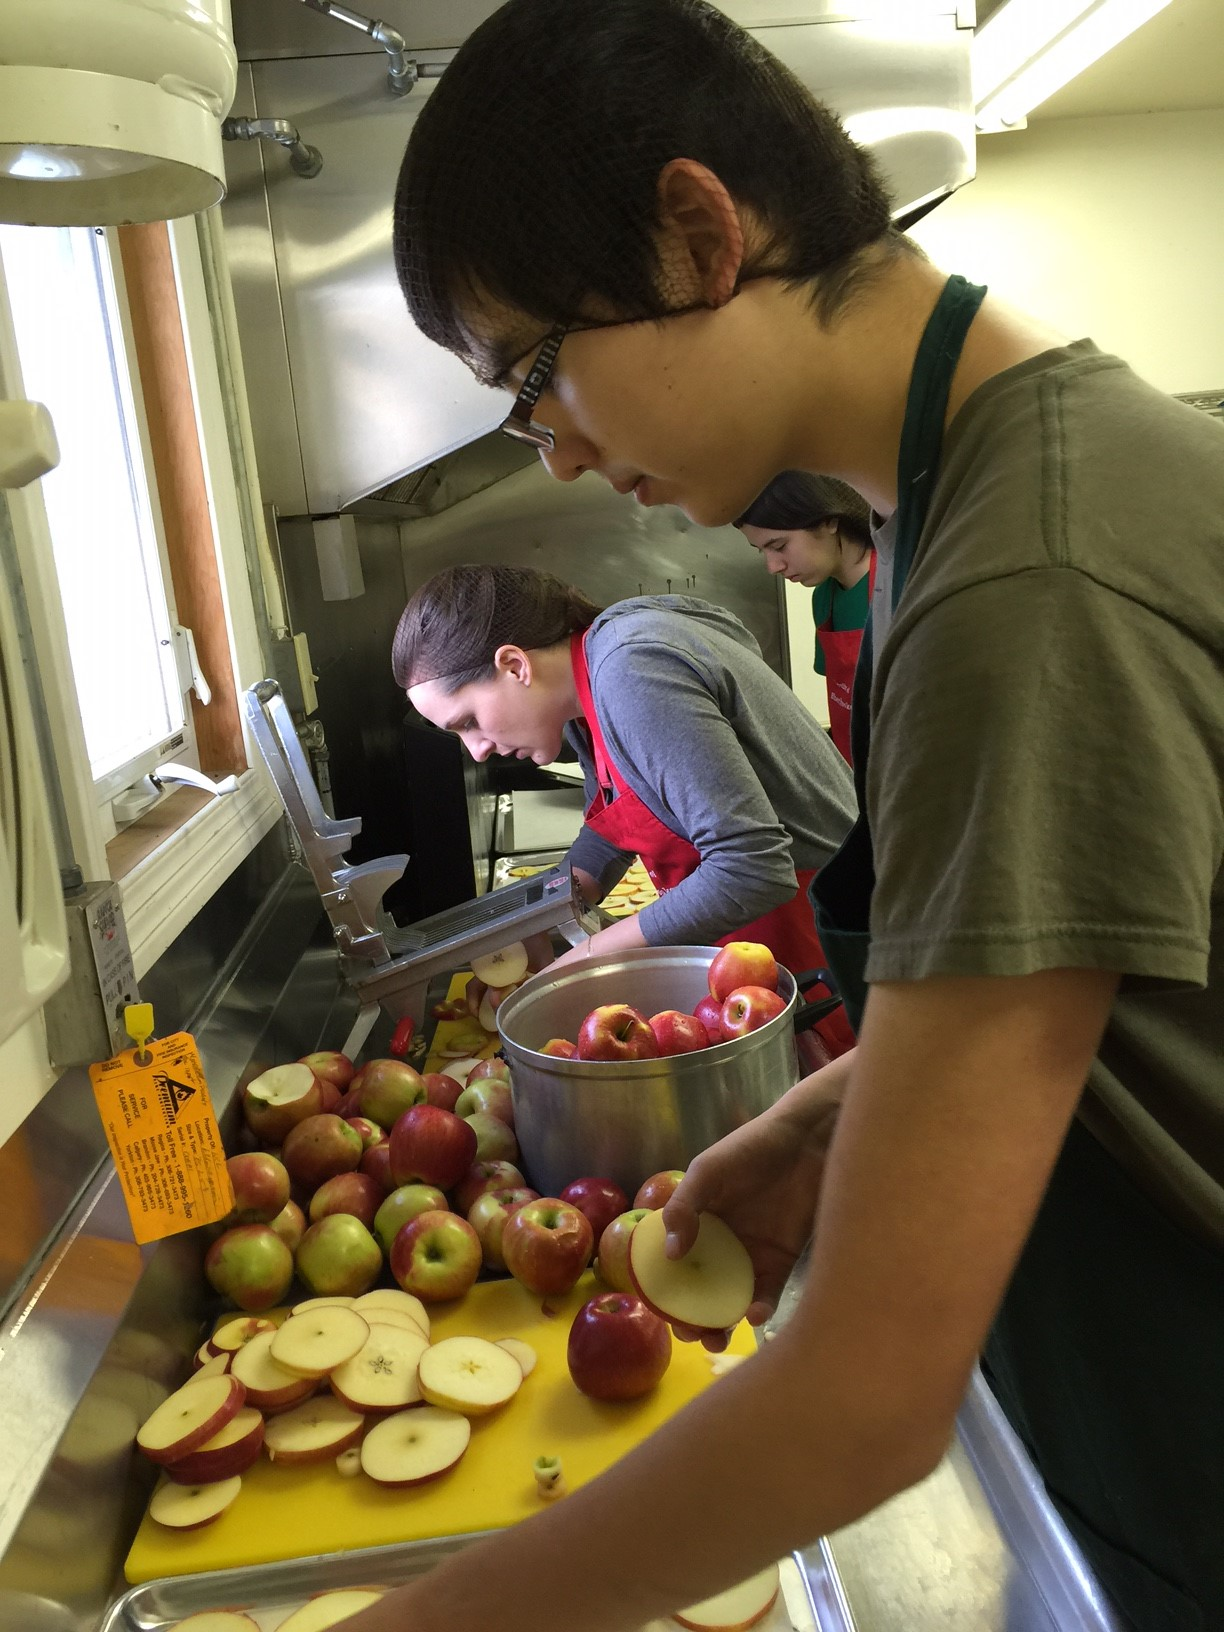 Apples getting sorted and sliced before drying.